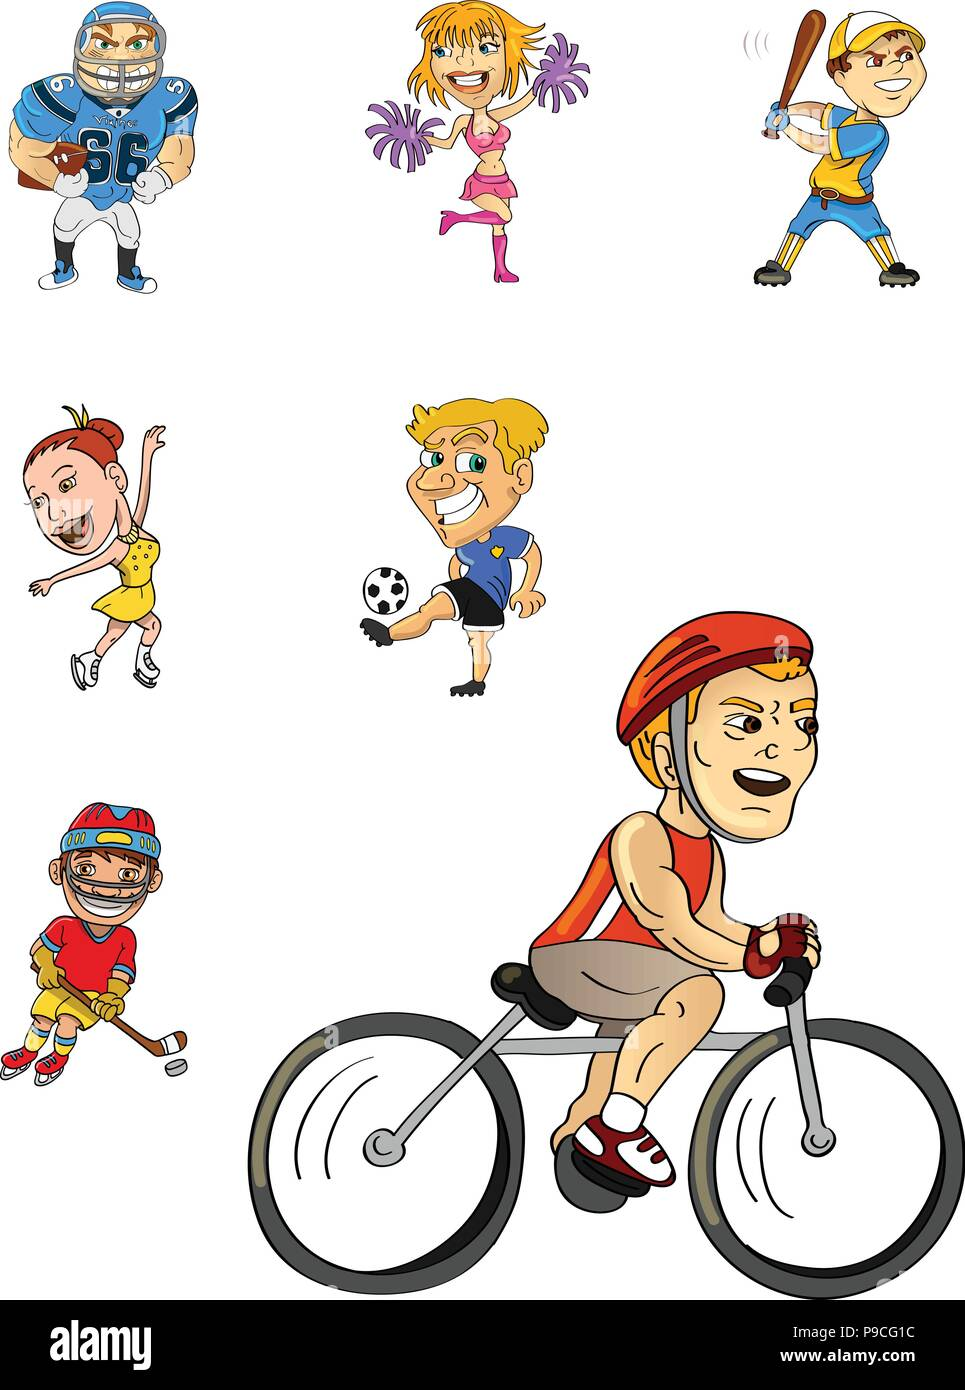 cartoon vector illustration of an athletes collection - Stock Vector